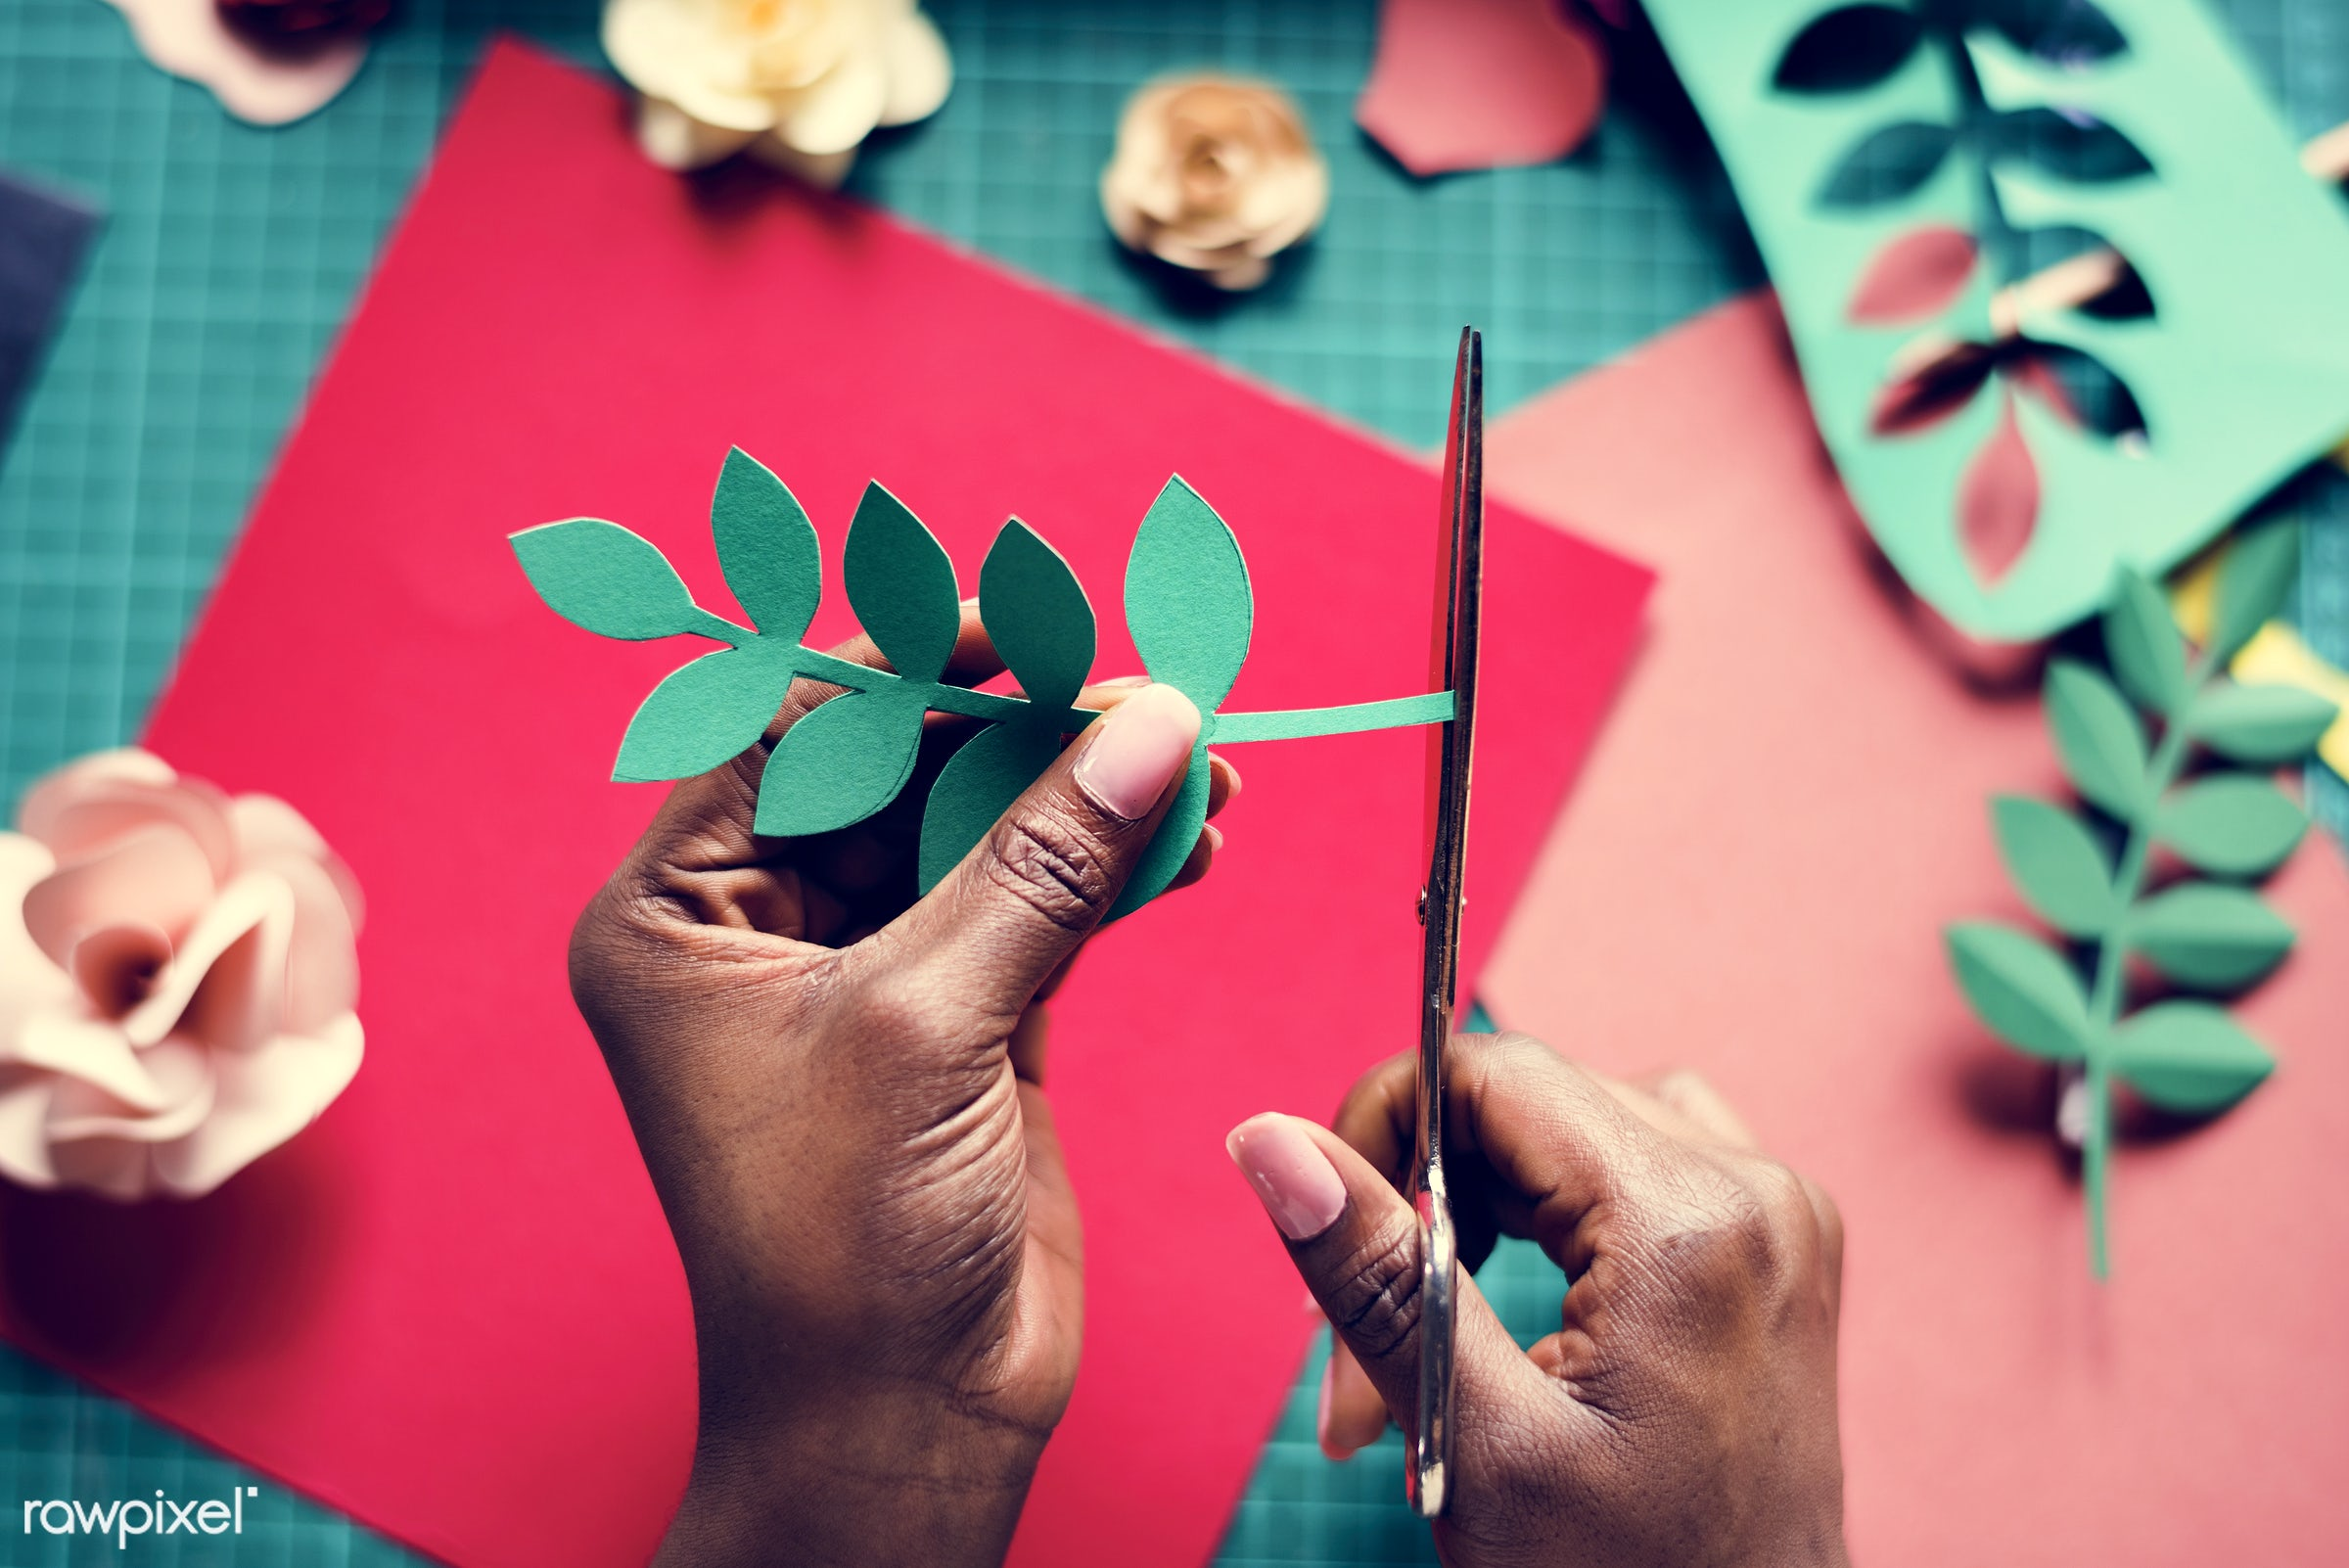 using, person, craft, handicraft, leaf, leaves, people, artwork, dried, woman, action, flowers, paper craft, art, hold,...